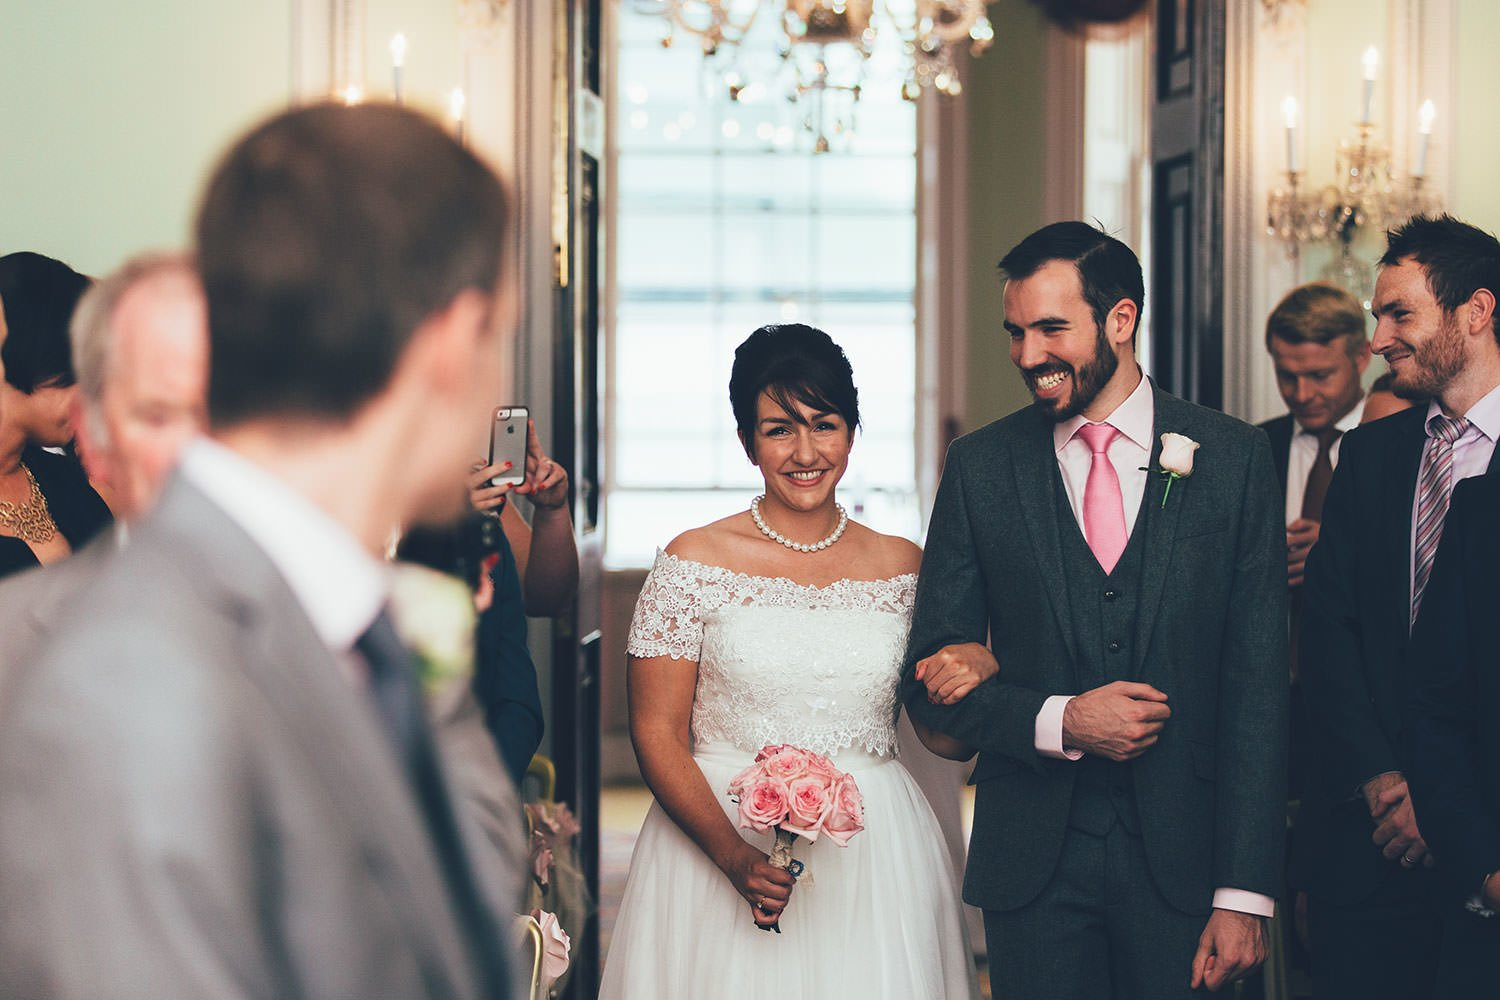 london wedding photography by matt wing